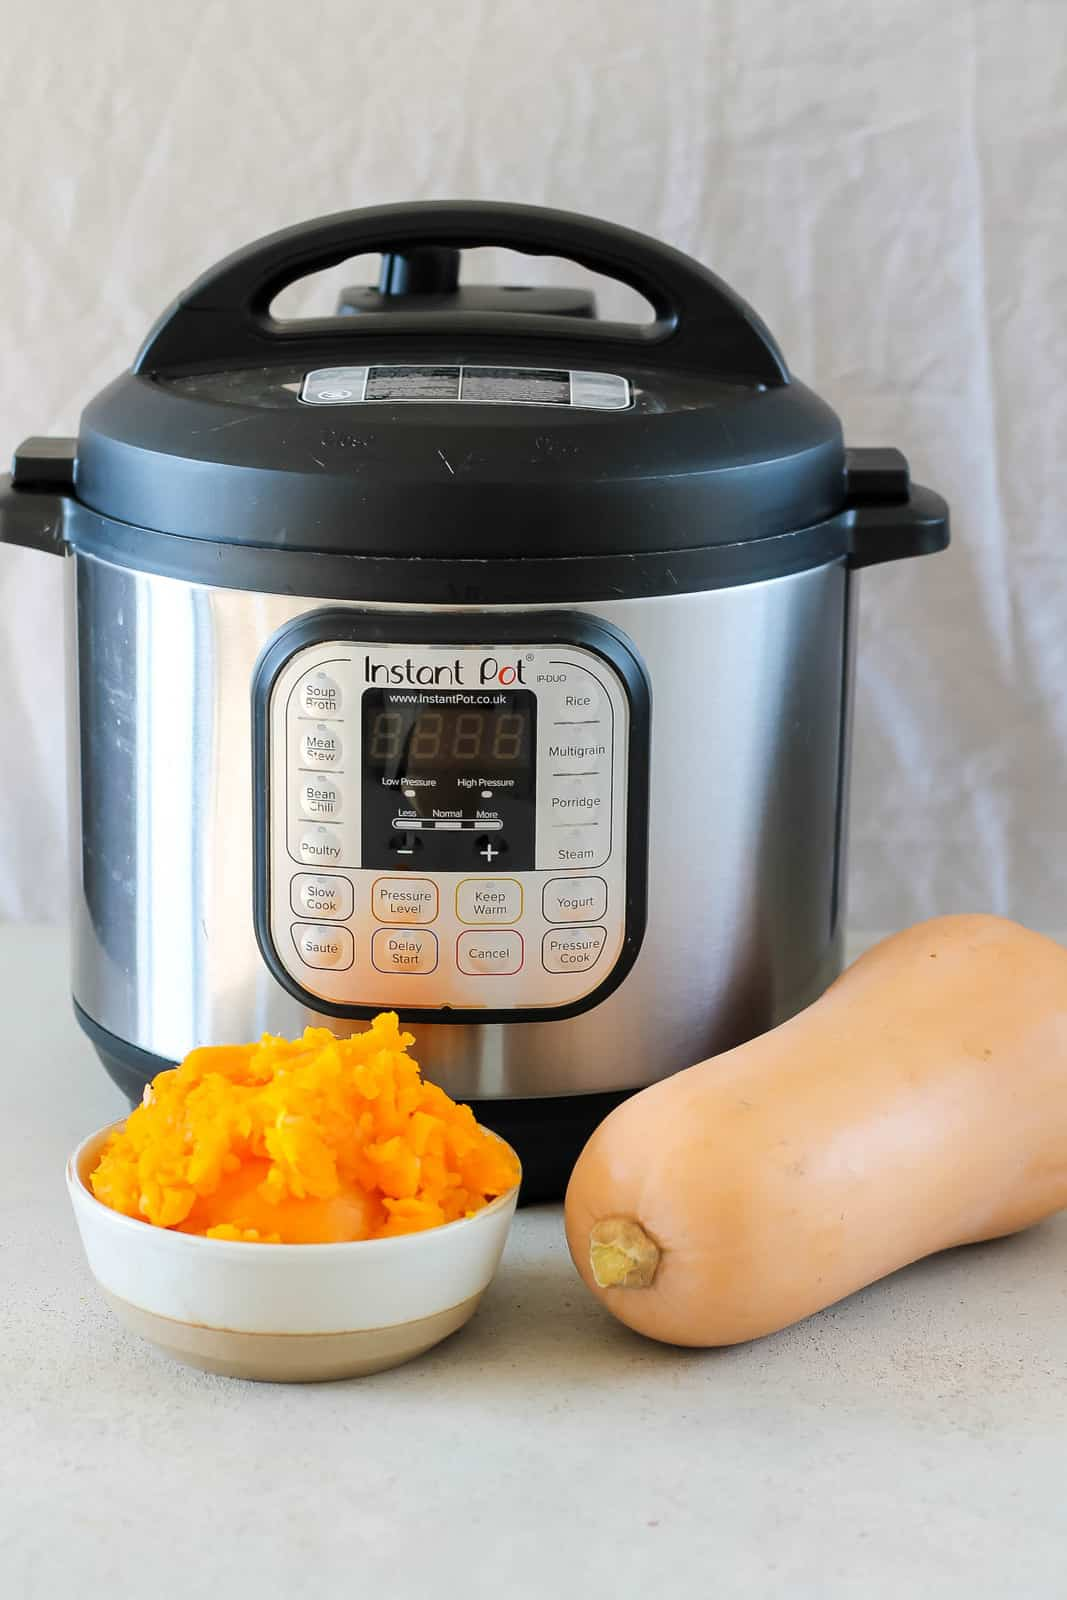 a bowl of mashed butternut squash and a whole butternut squash in front of an instant pot